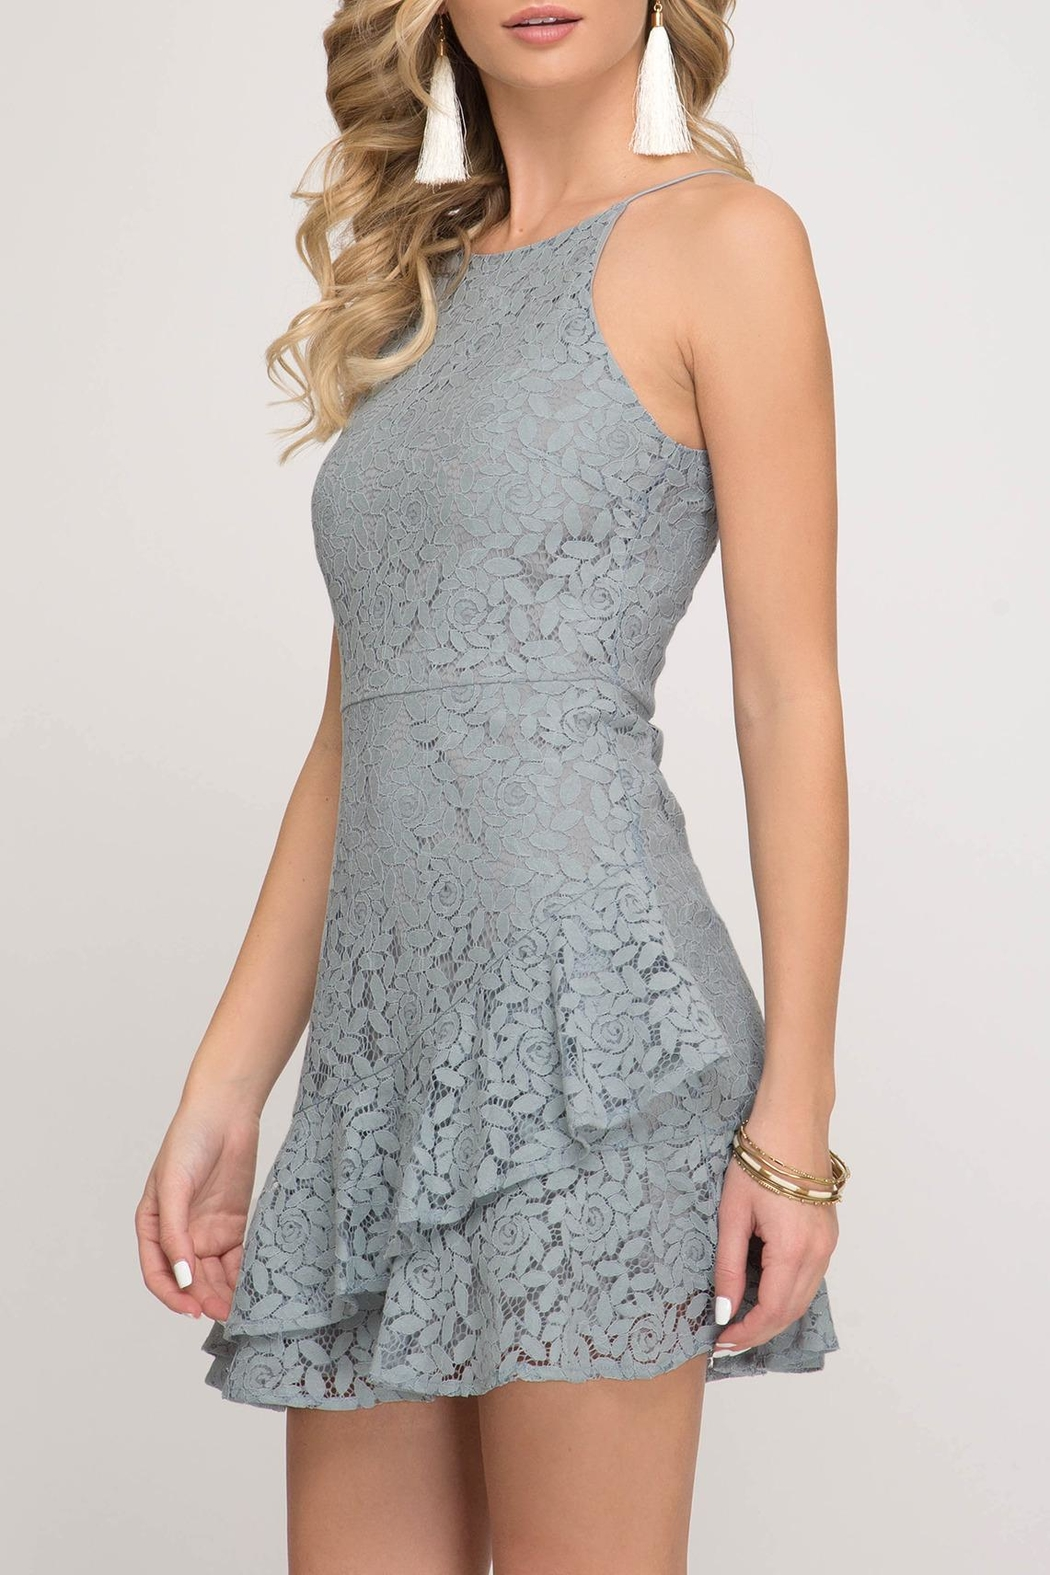 She + Sky Lace Cami Dress - Front Full Image